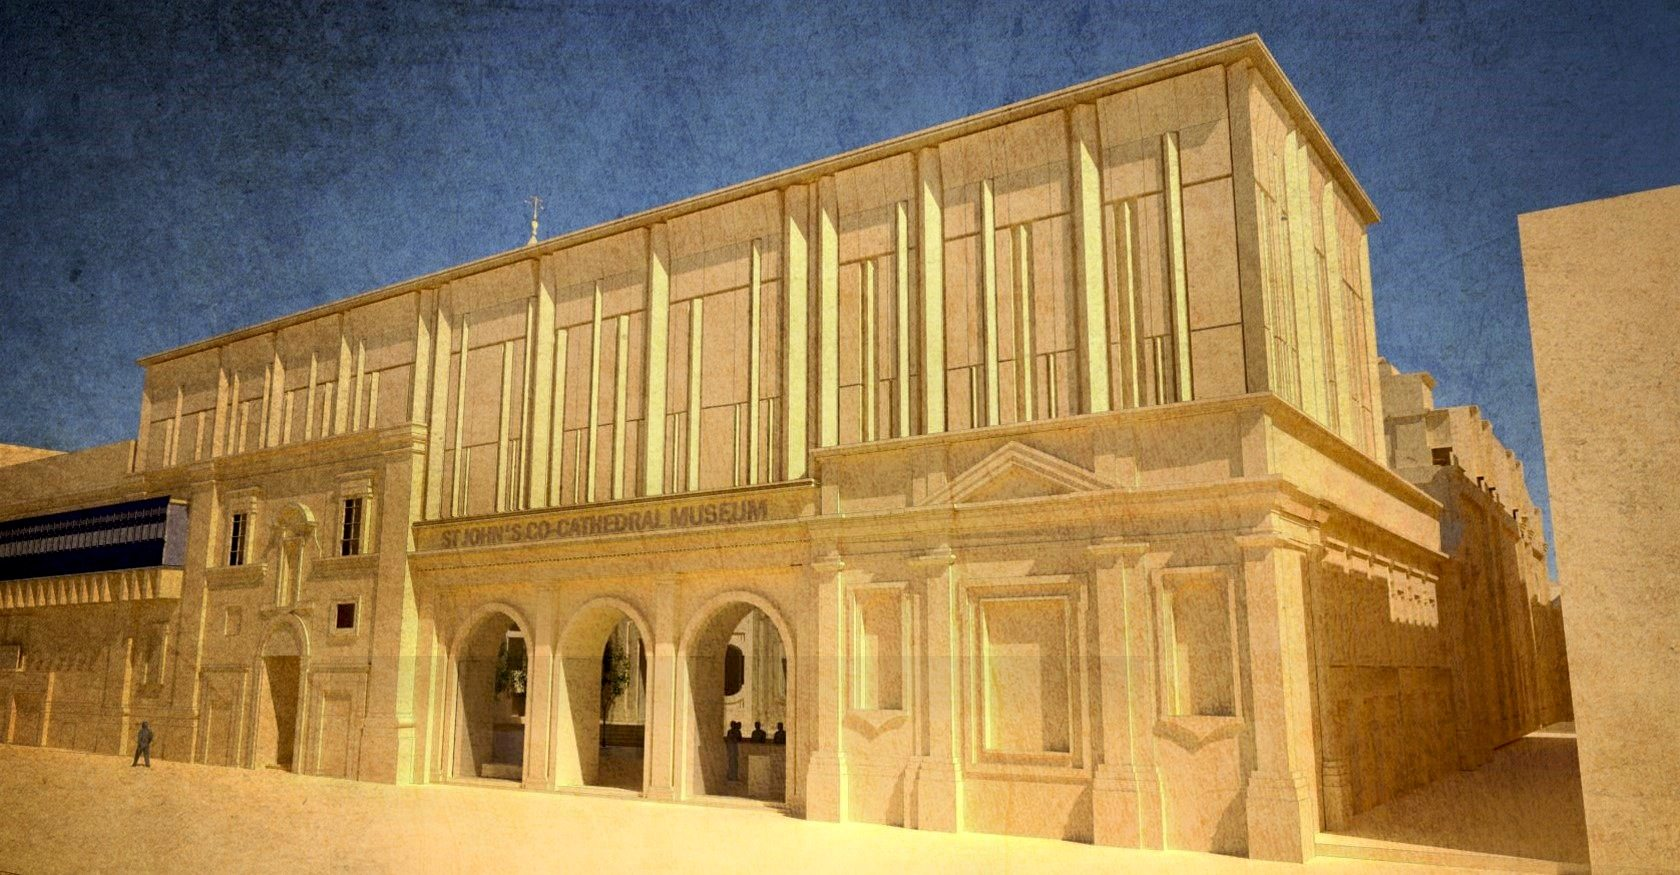 Saint John's Co Cathedral Museum extension.  Project details of the extension. Date: 2013 – ongoing. Client: St. John's Co Cathedral Foundation. Location: Valletta, Malta. Lighting design: Franck Franjou